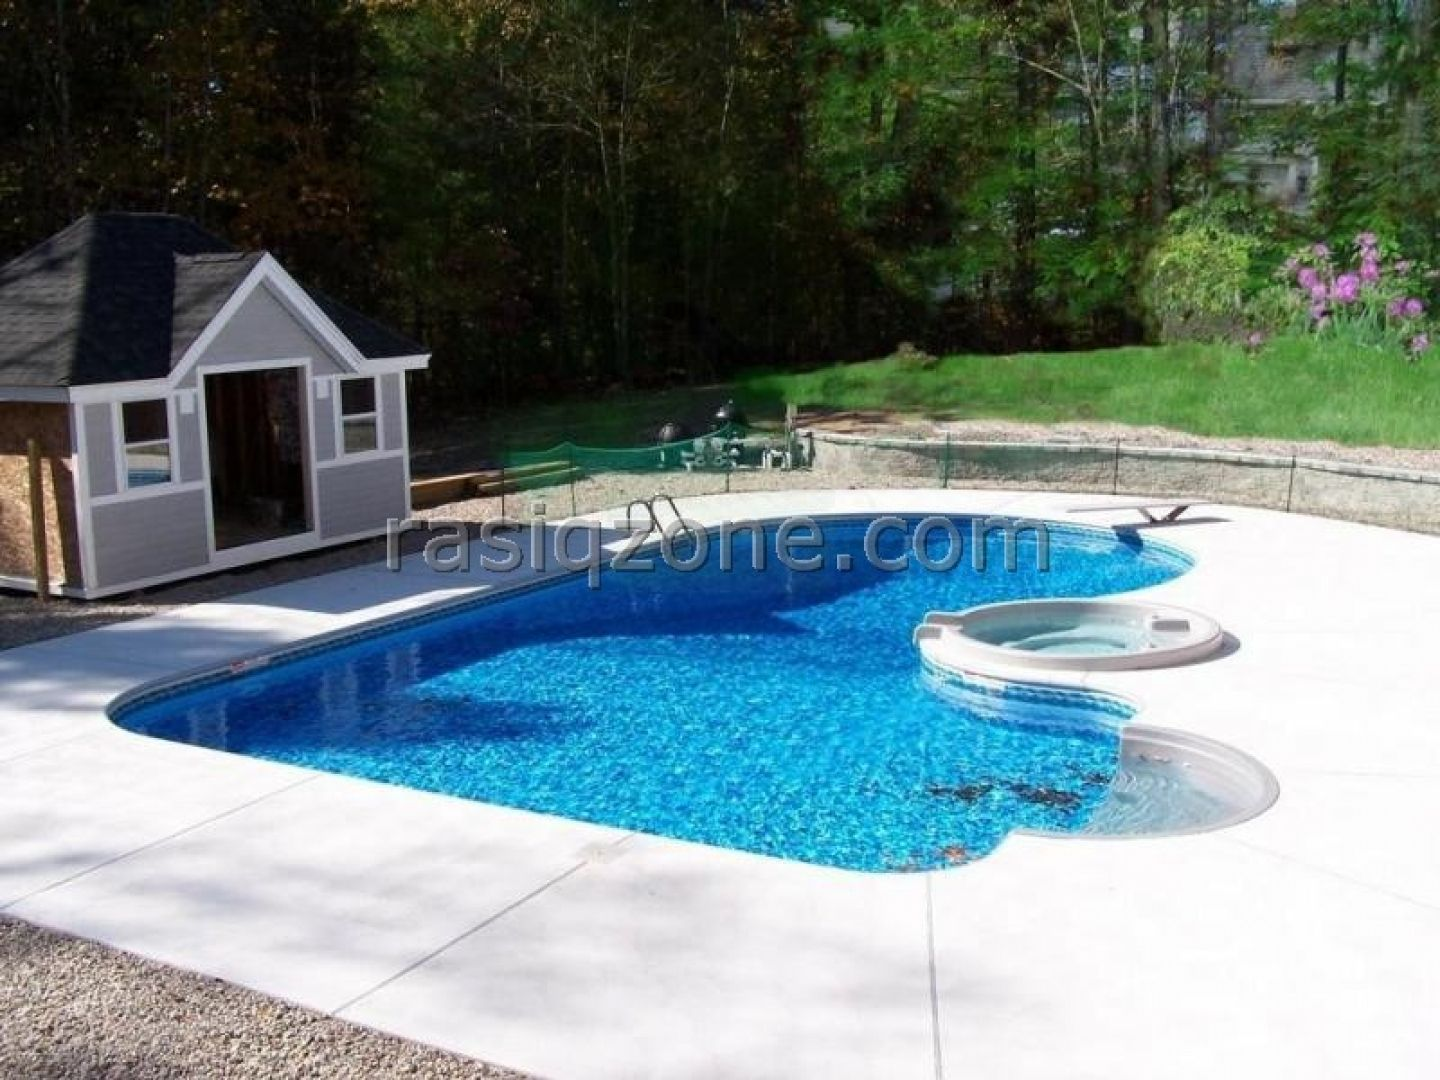 17 Best images about Swimming Pool Design on Pinterest | Small yards, Swimming  pool designs and Pools